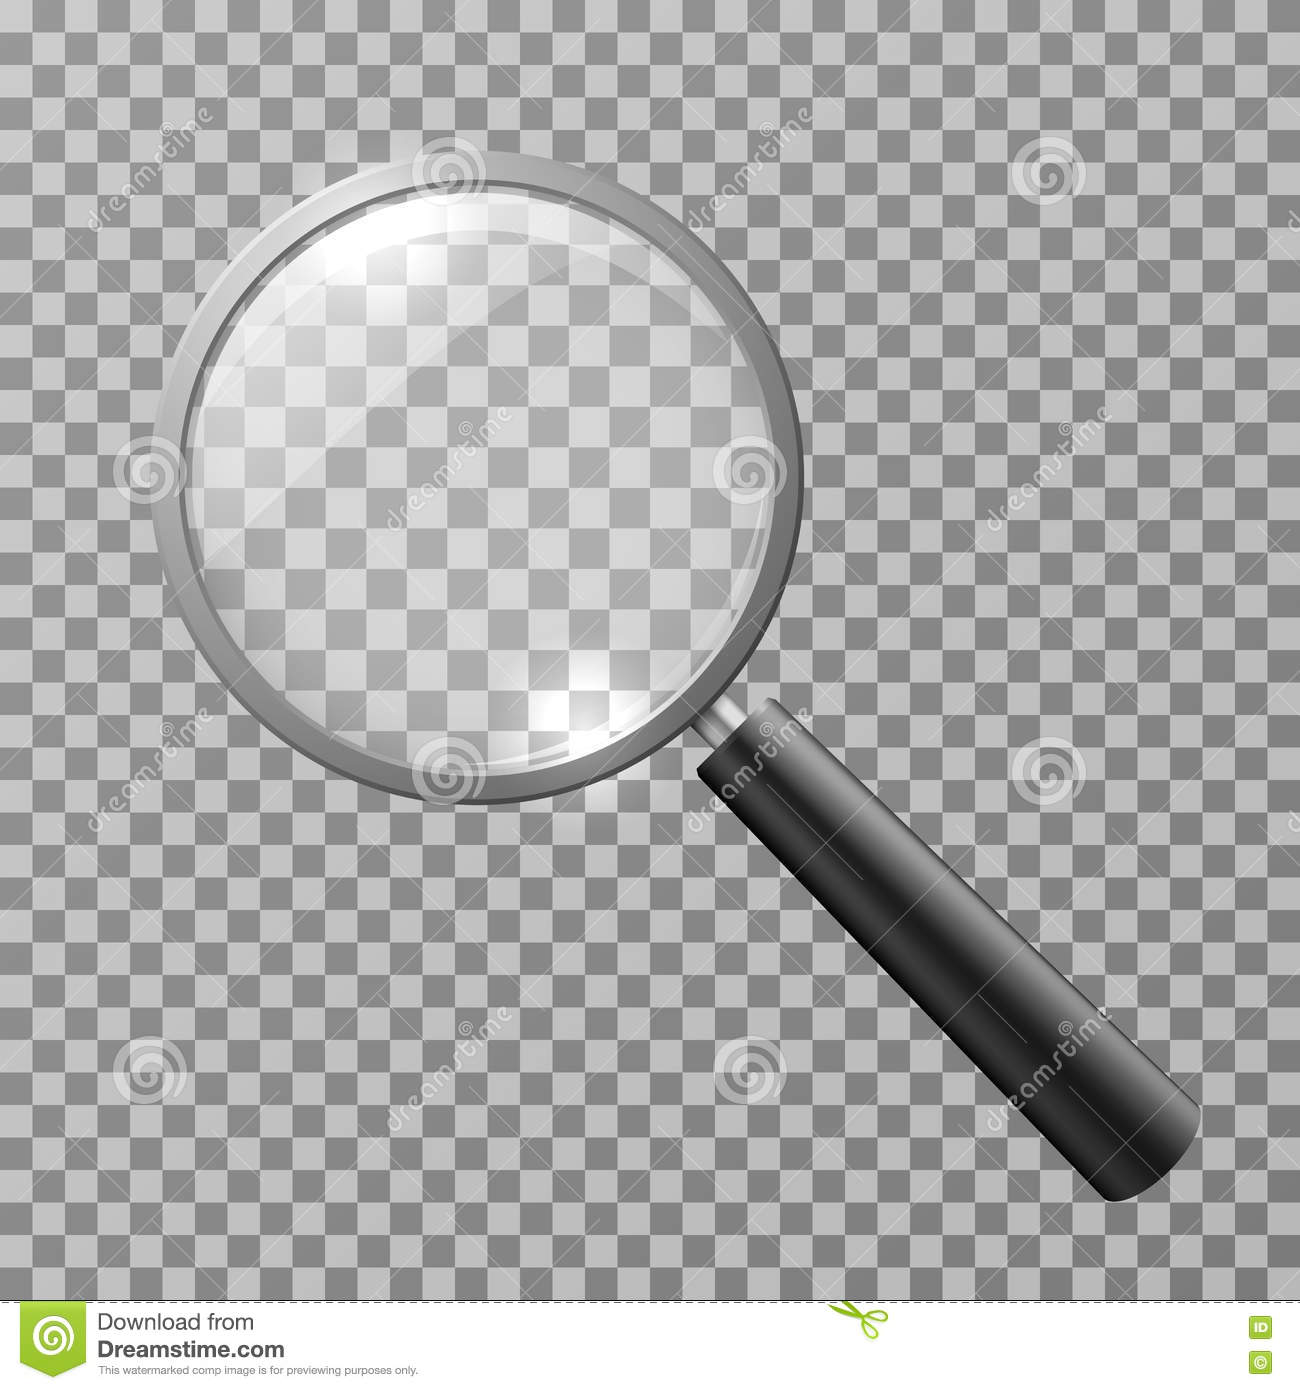 Realistic magnifying glass on checkered background vector illustration